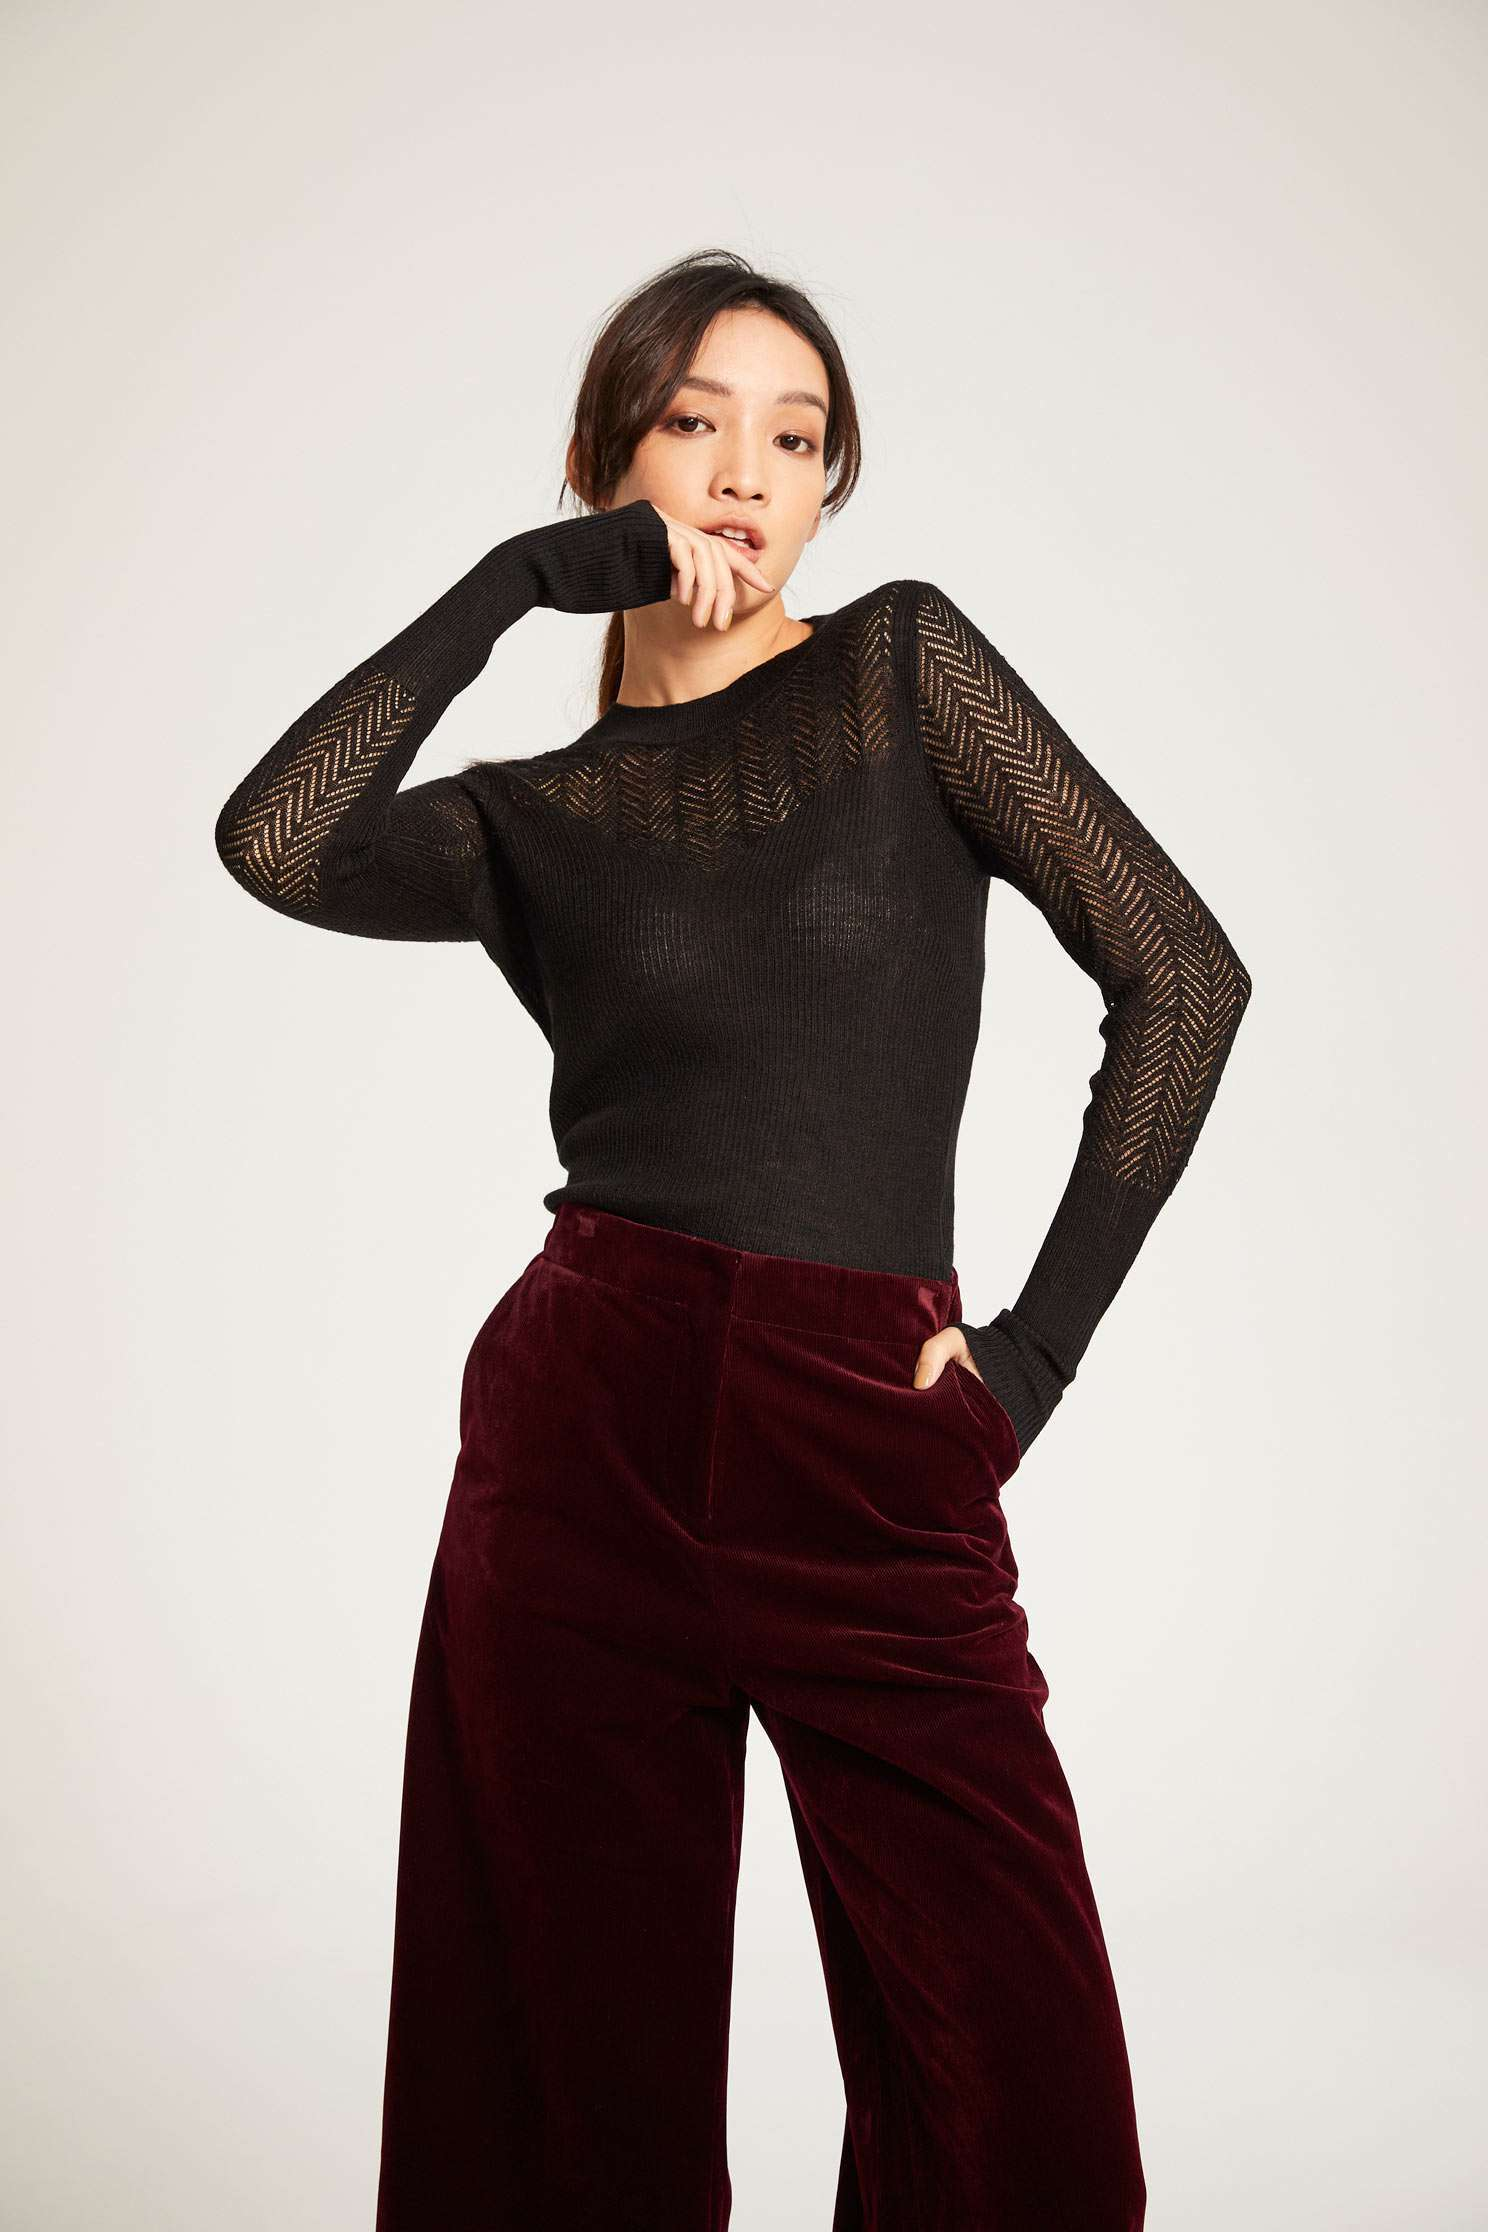 High-necked knitwear,圓領上衣,簍空上衣,Fantasy purple,knitting,Knitted top,Knitted Top,Turtleneck top,黑色上衣